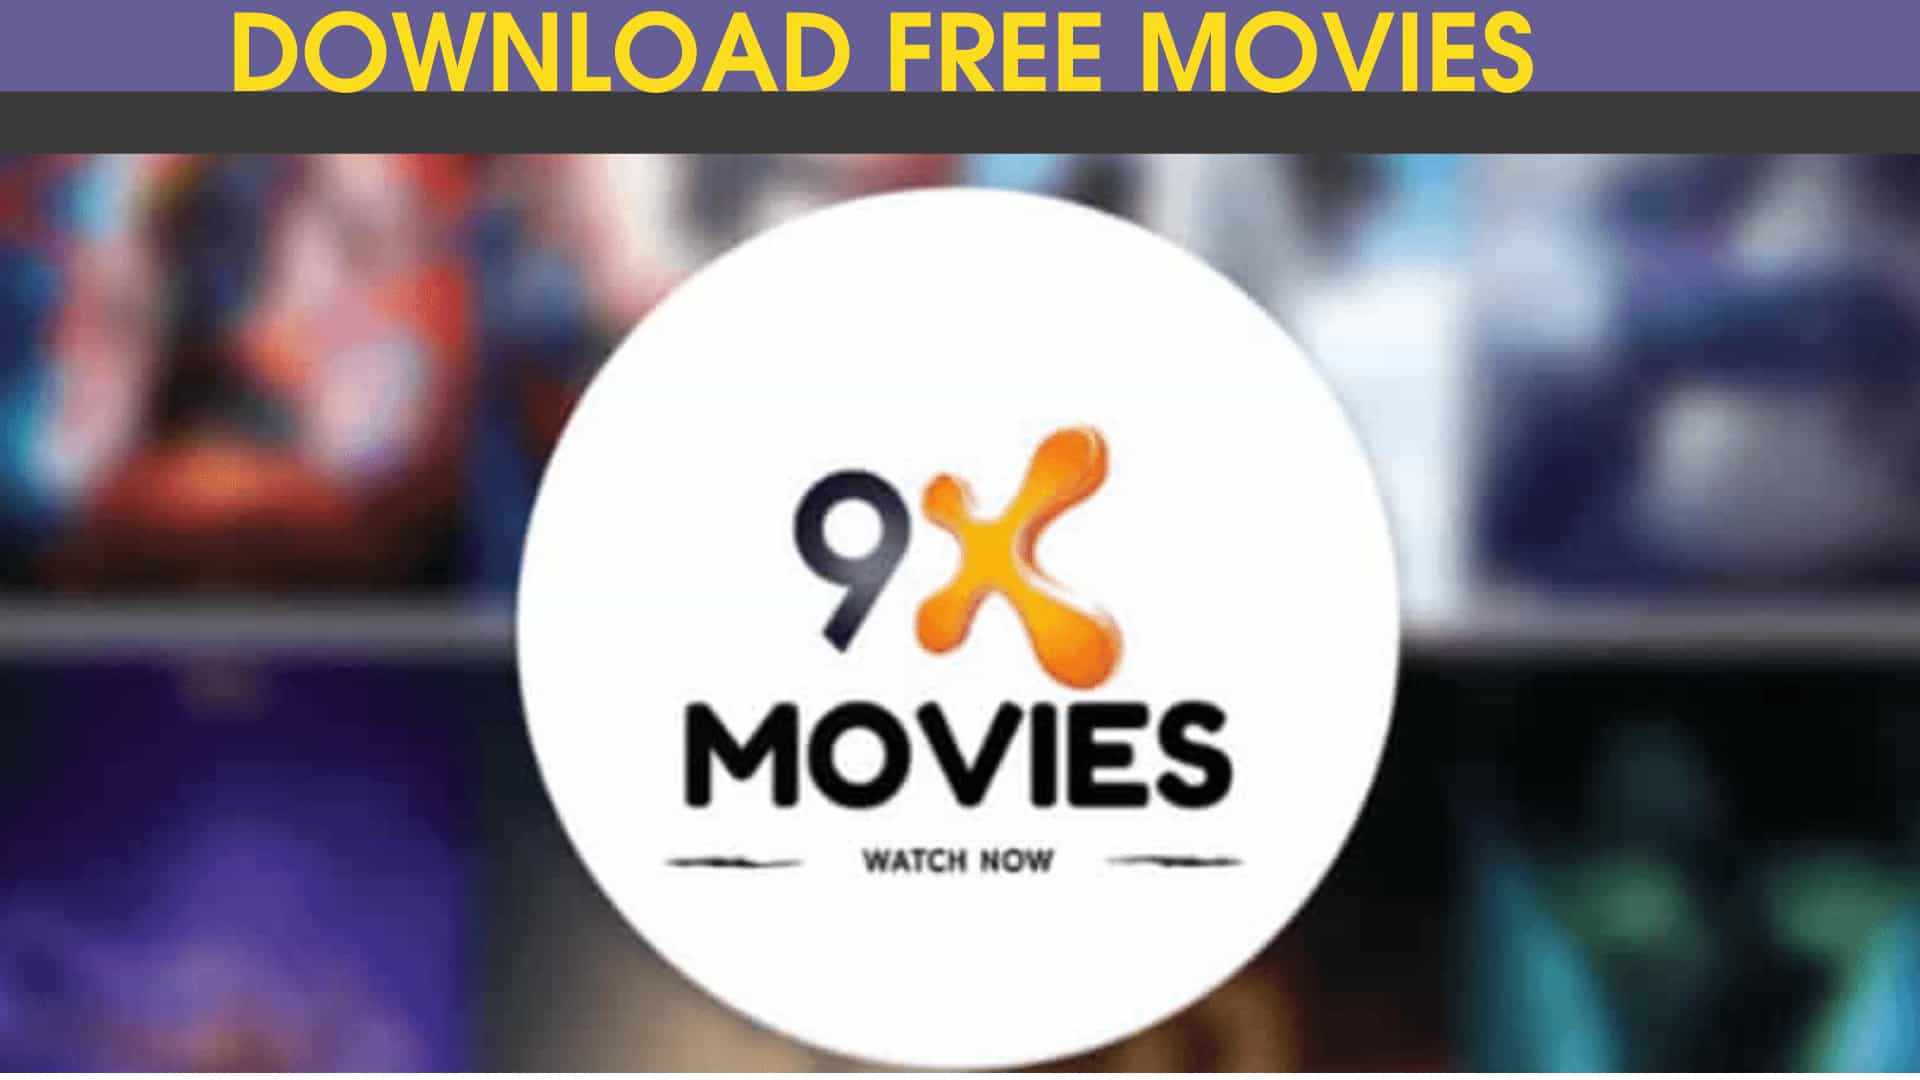 9xmovies-download